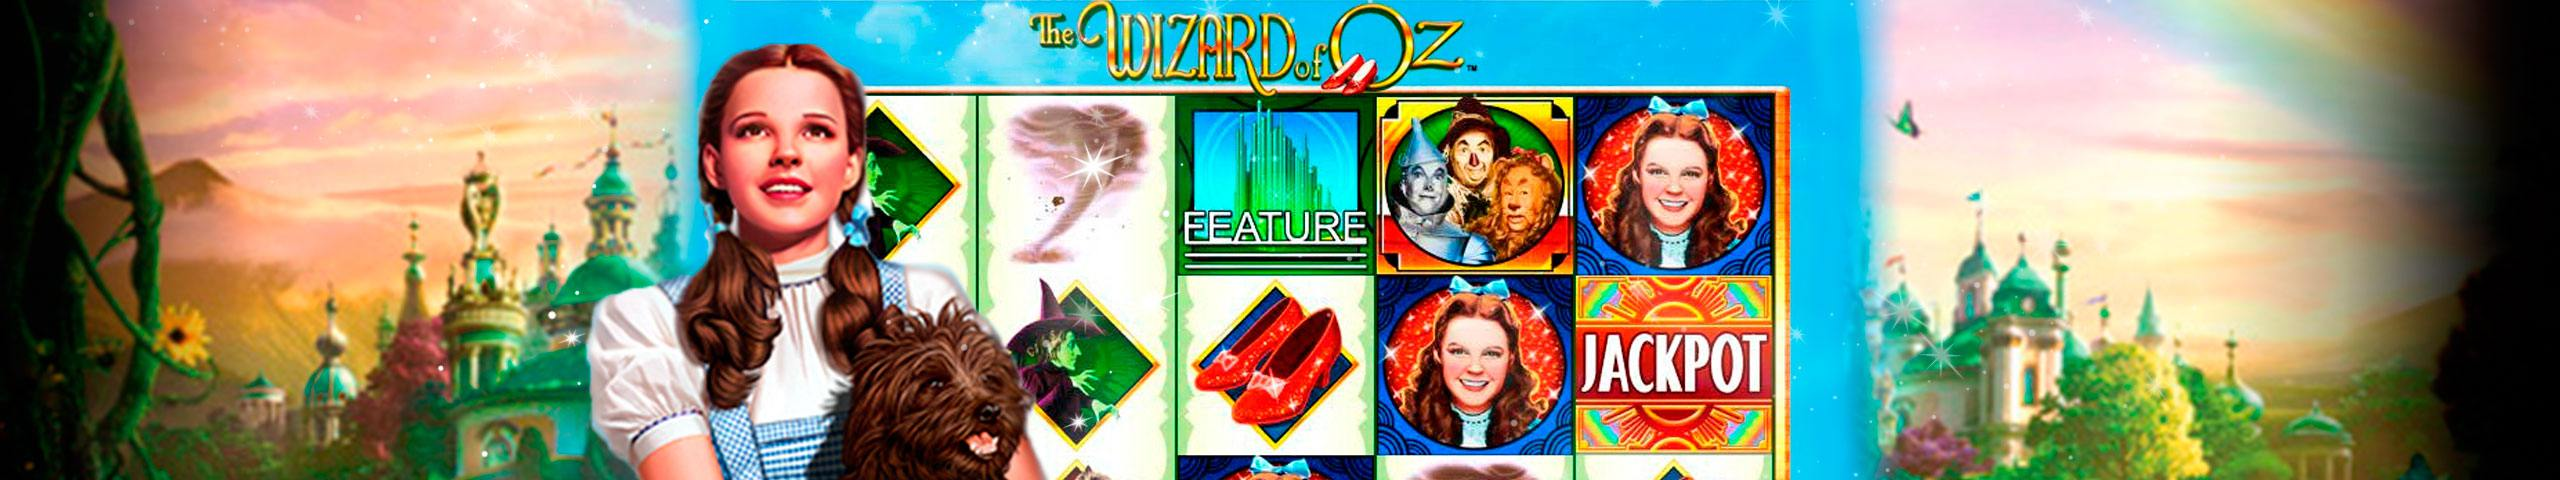 Wizard Of Oz spelautomater WMS (Williams Interactive)  wyrmspel.com